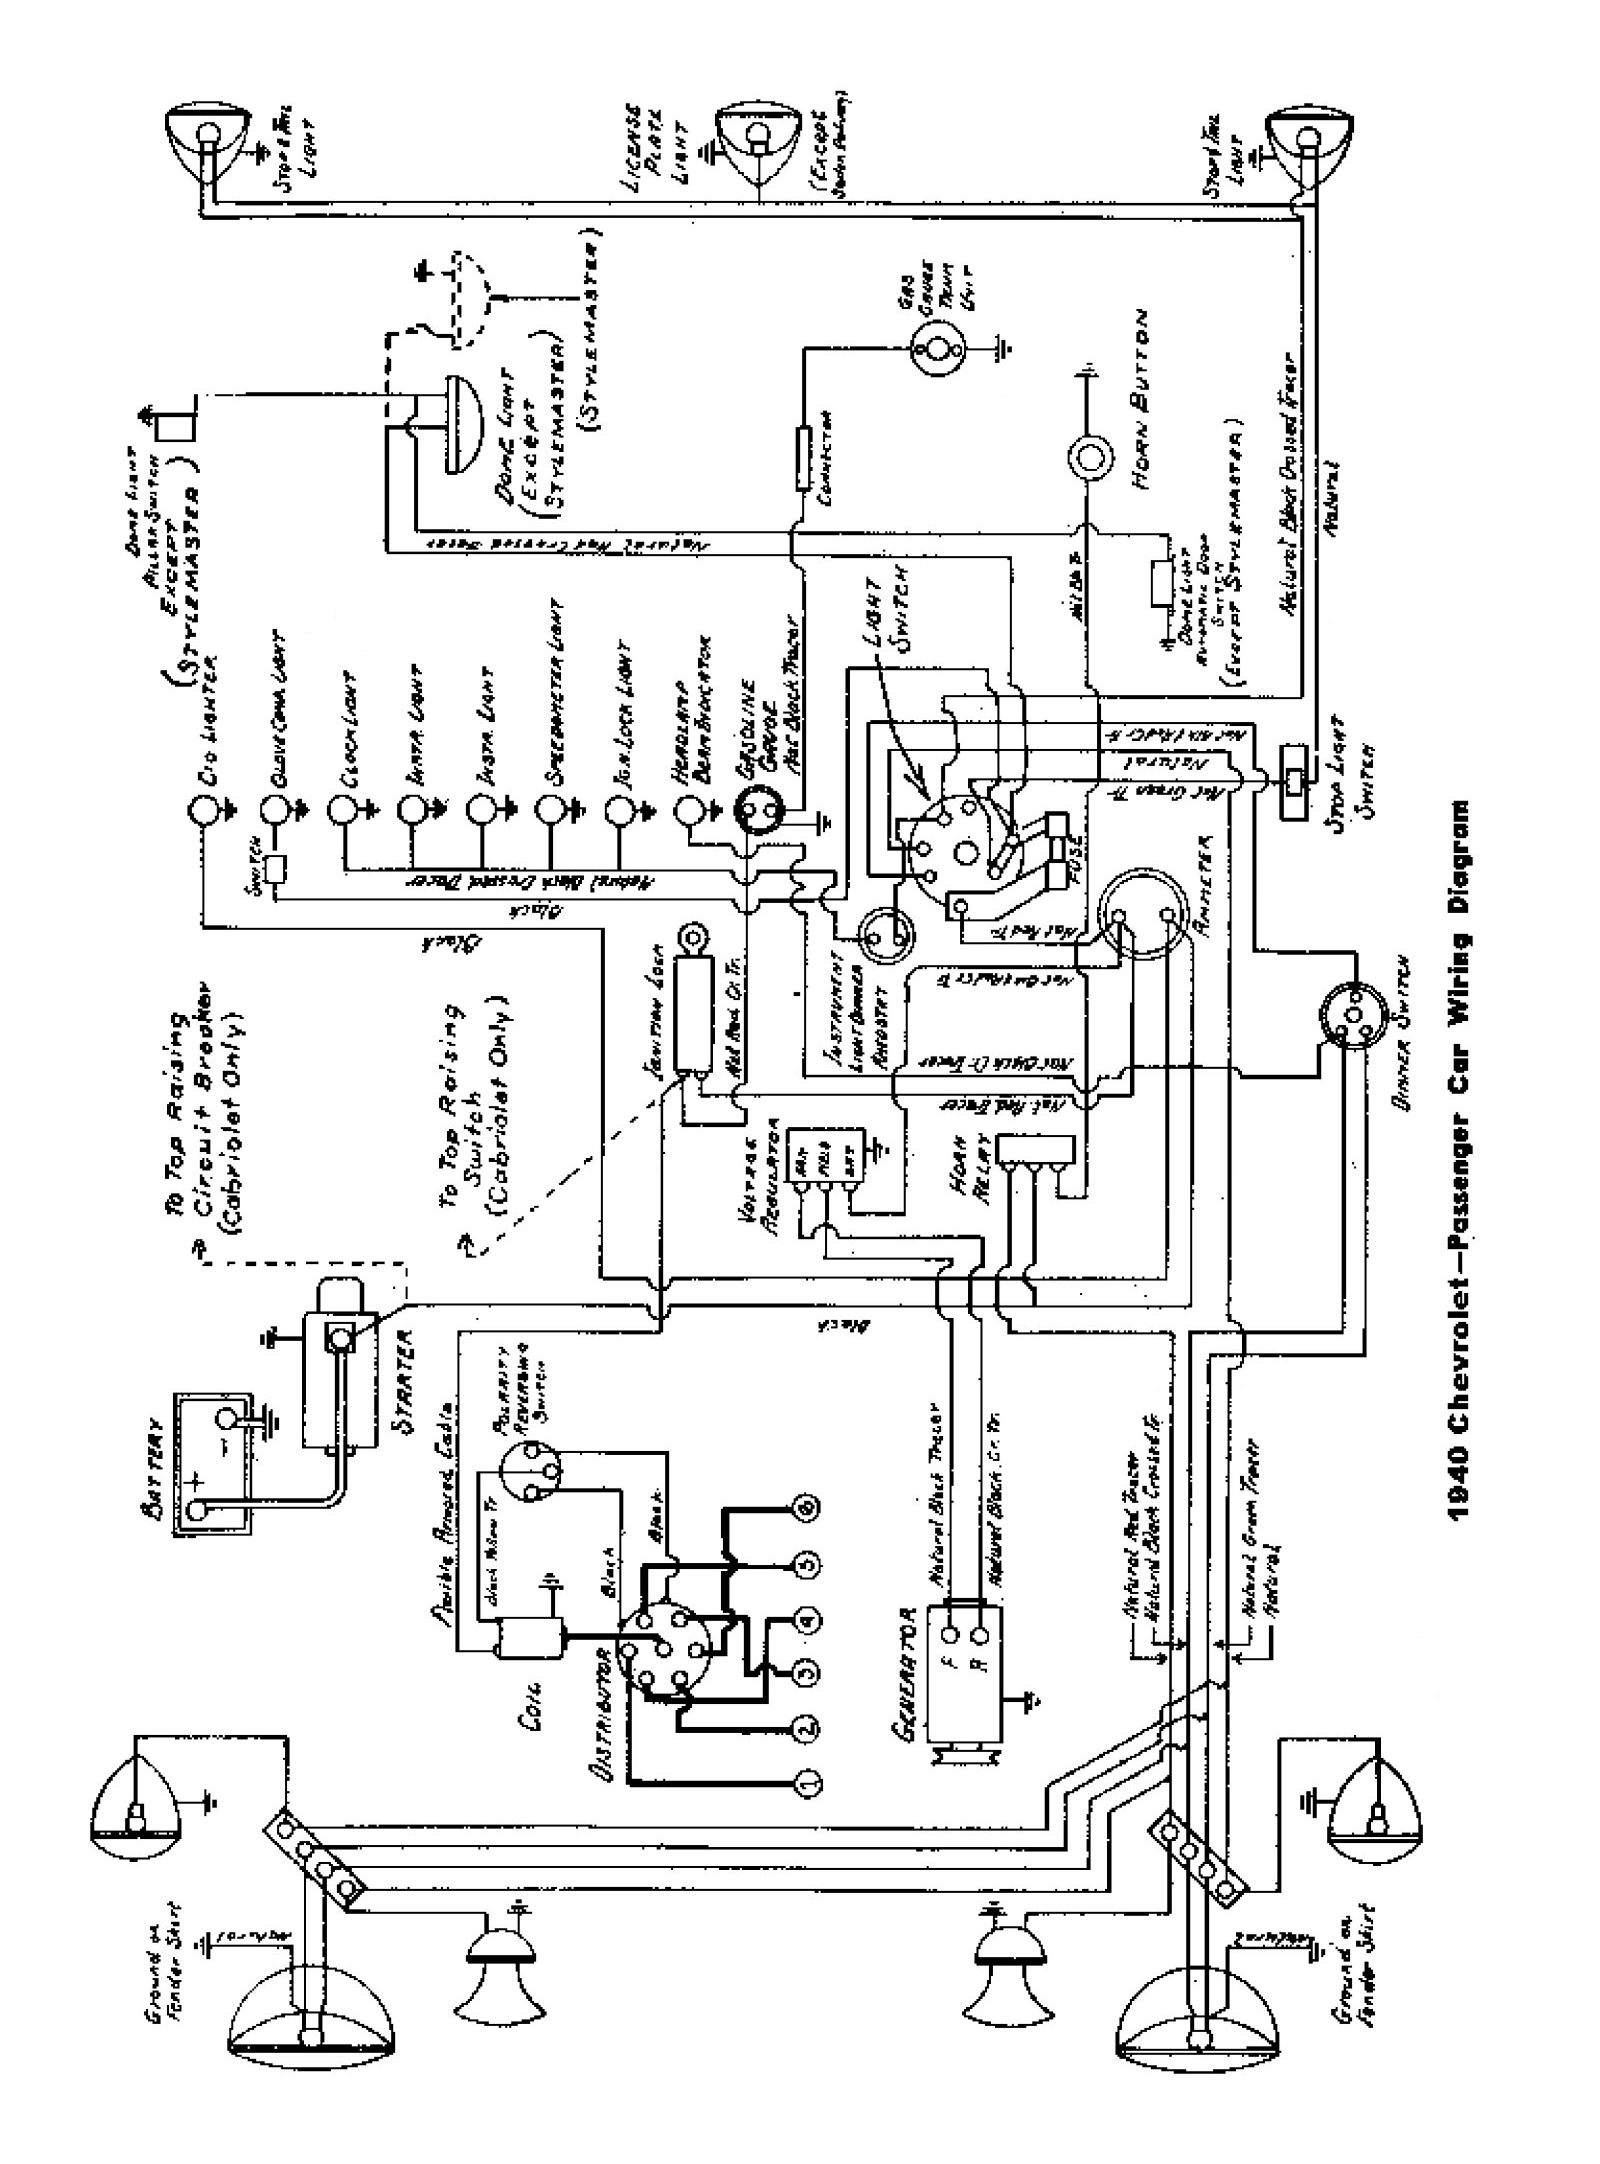 1940 Chevrolet Pickup Wiring Diagram Circuit And Hub Basic Electric Guitar Diagrams Chevy Rh Oldcarmanualproject Com Pick Up 3 2